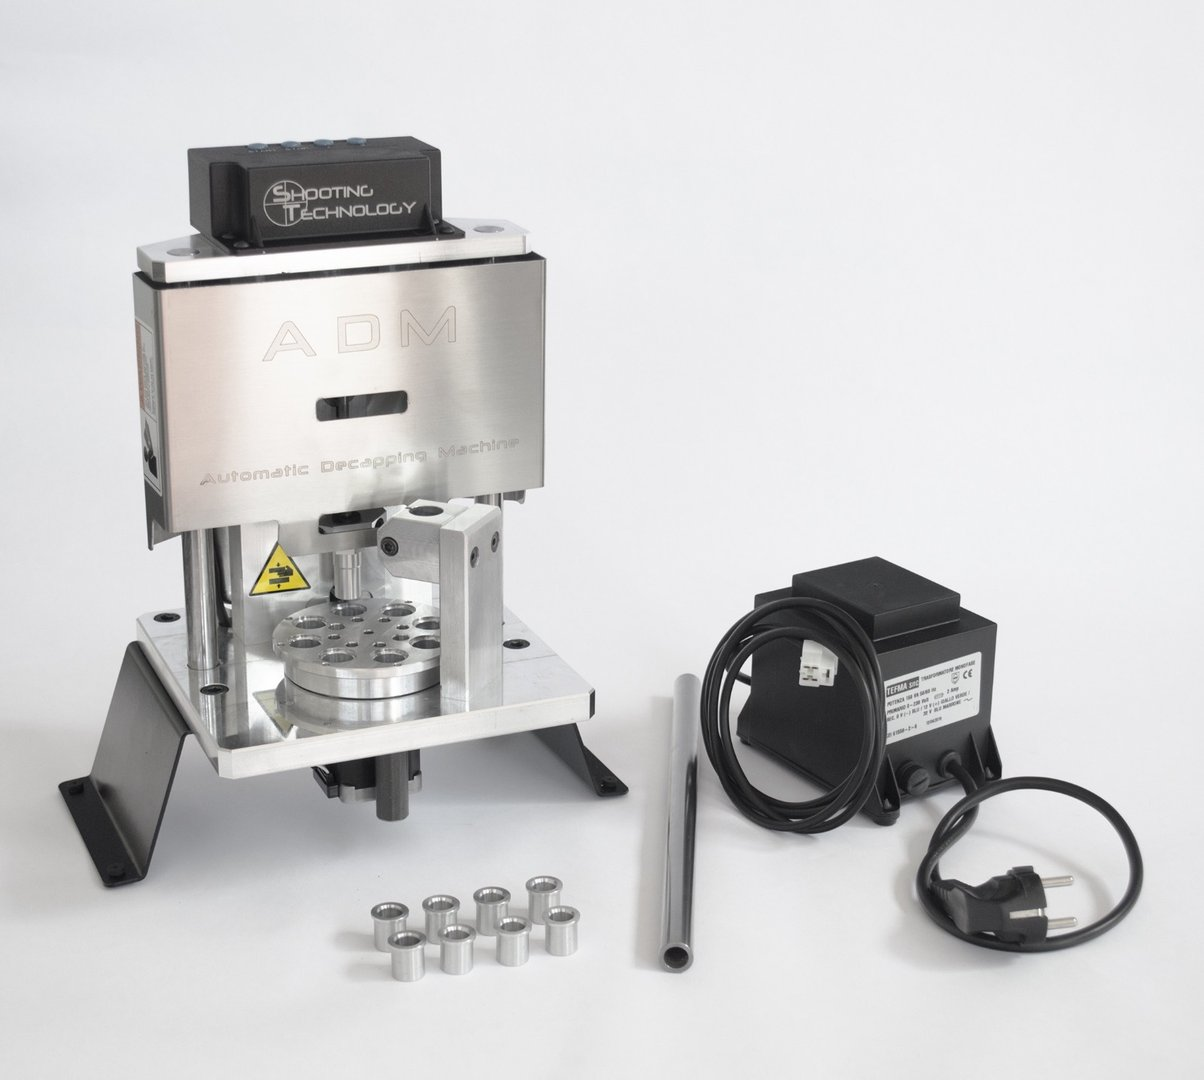 Automatic Decapping Maschine ADM